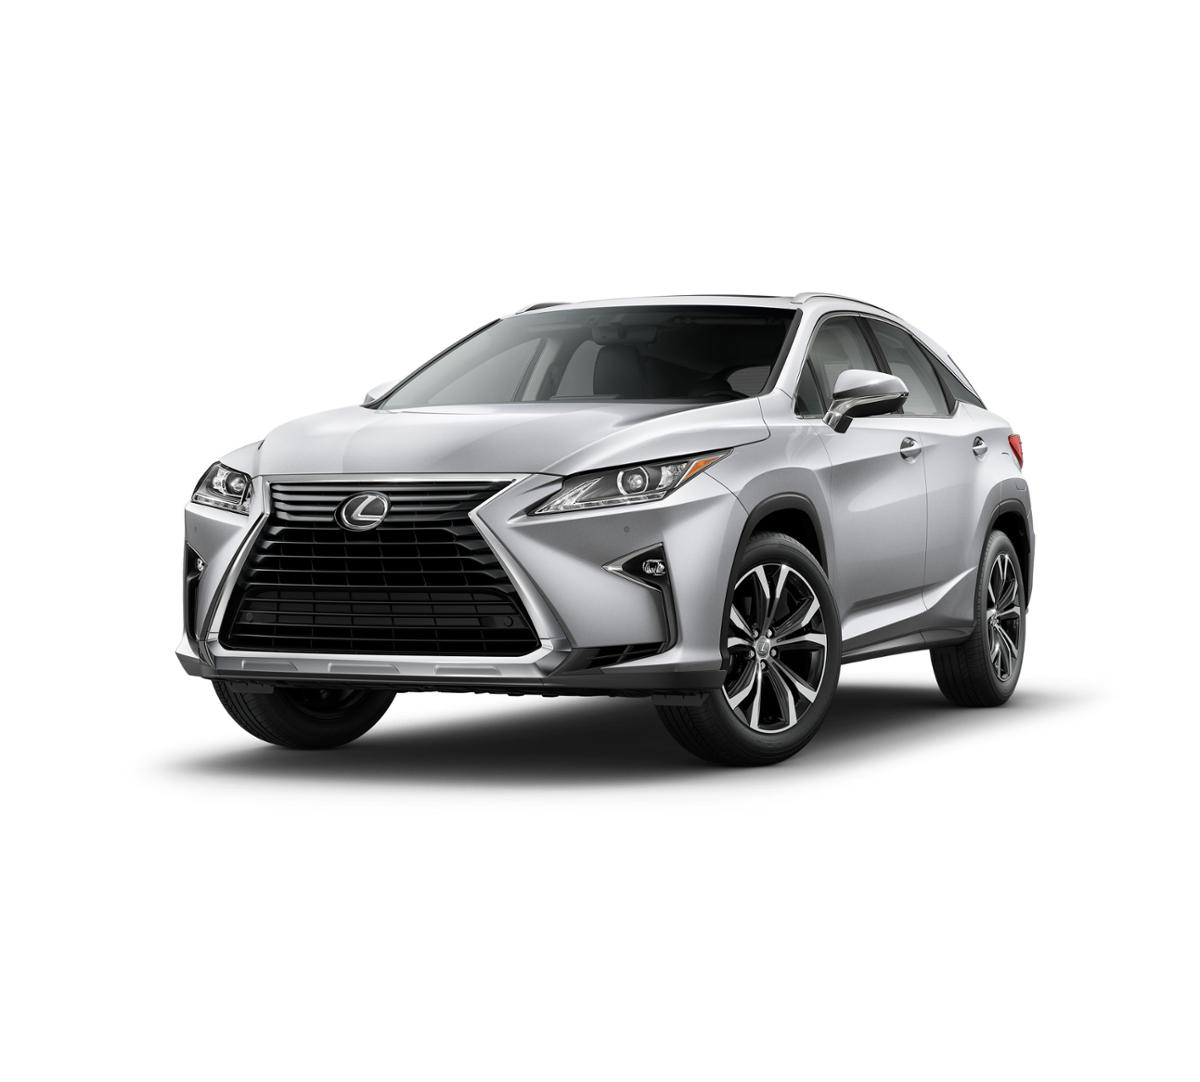 2018 Lexus RX 350 Vehicle Photo in Santa Monica, CA 90404